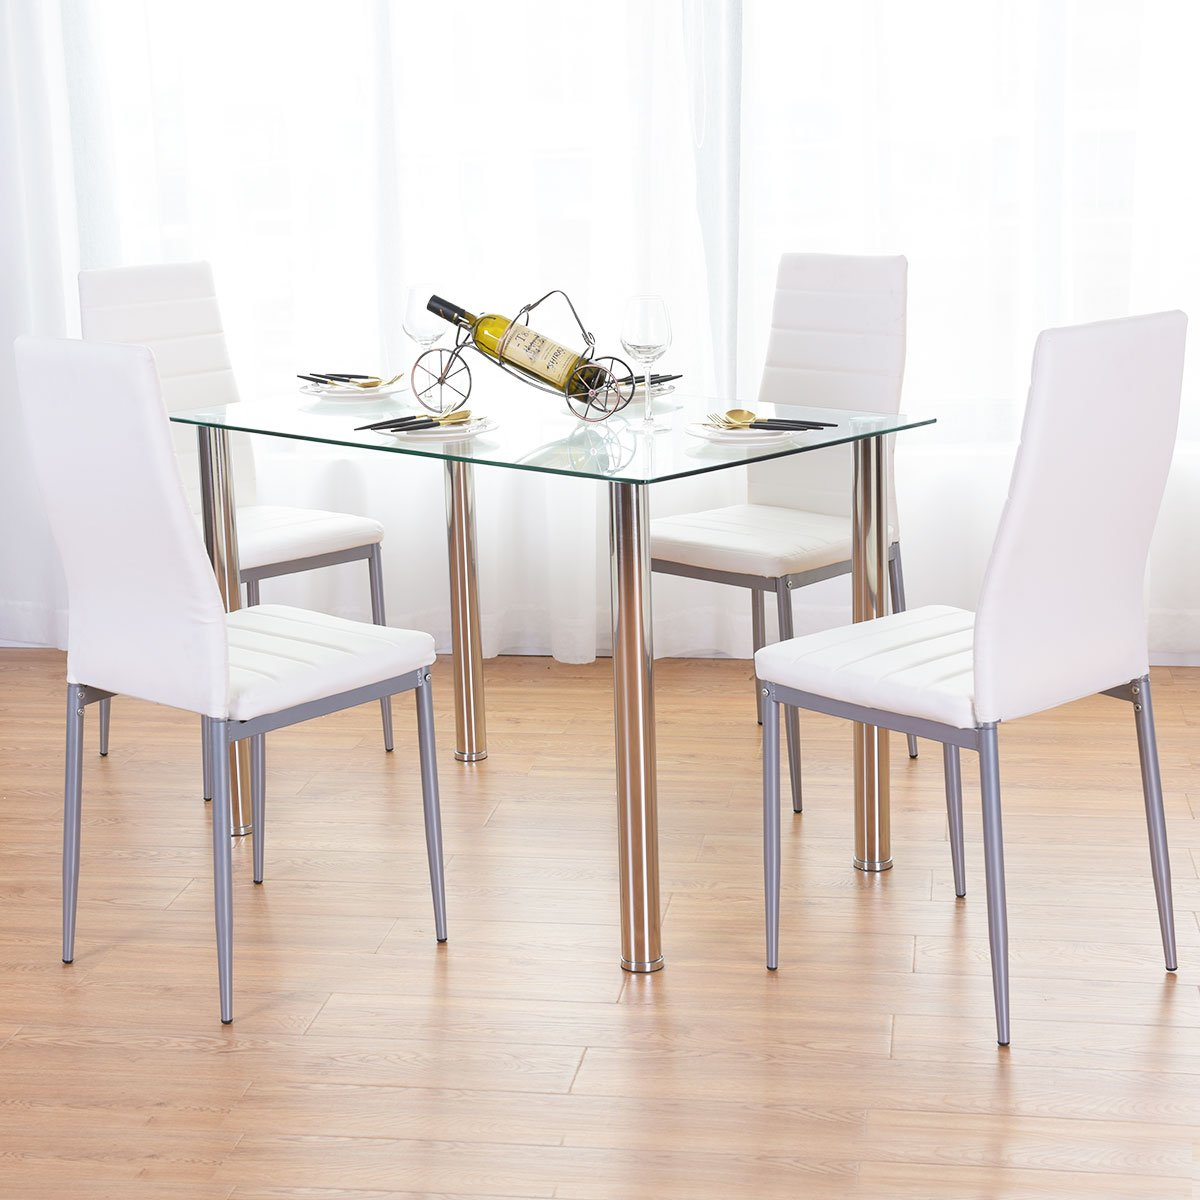 Tangkula Dining Table Set 5 PCS Modern Tempered Glass Top PVC Leather Chair Dining Table and Chairs Set Dining Room Kitchen Furniture, White by Tangkula